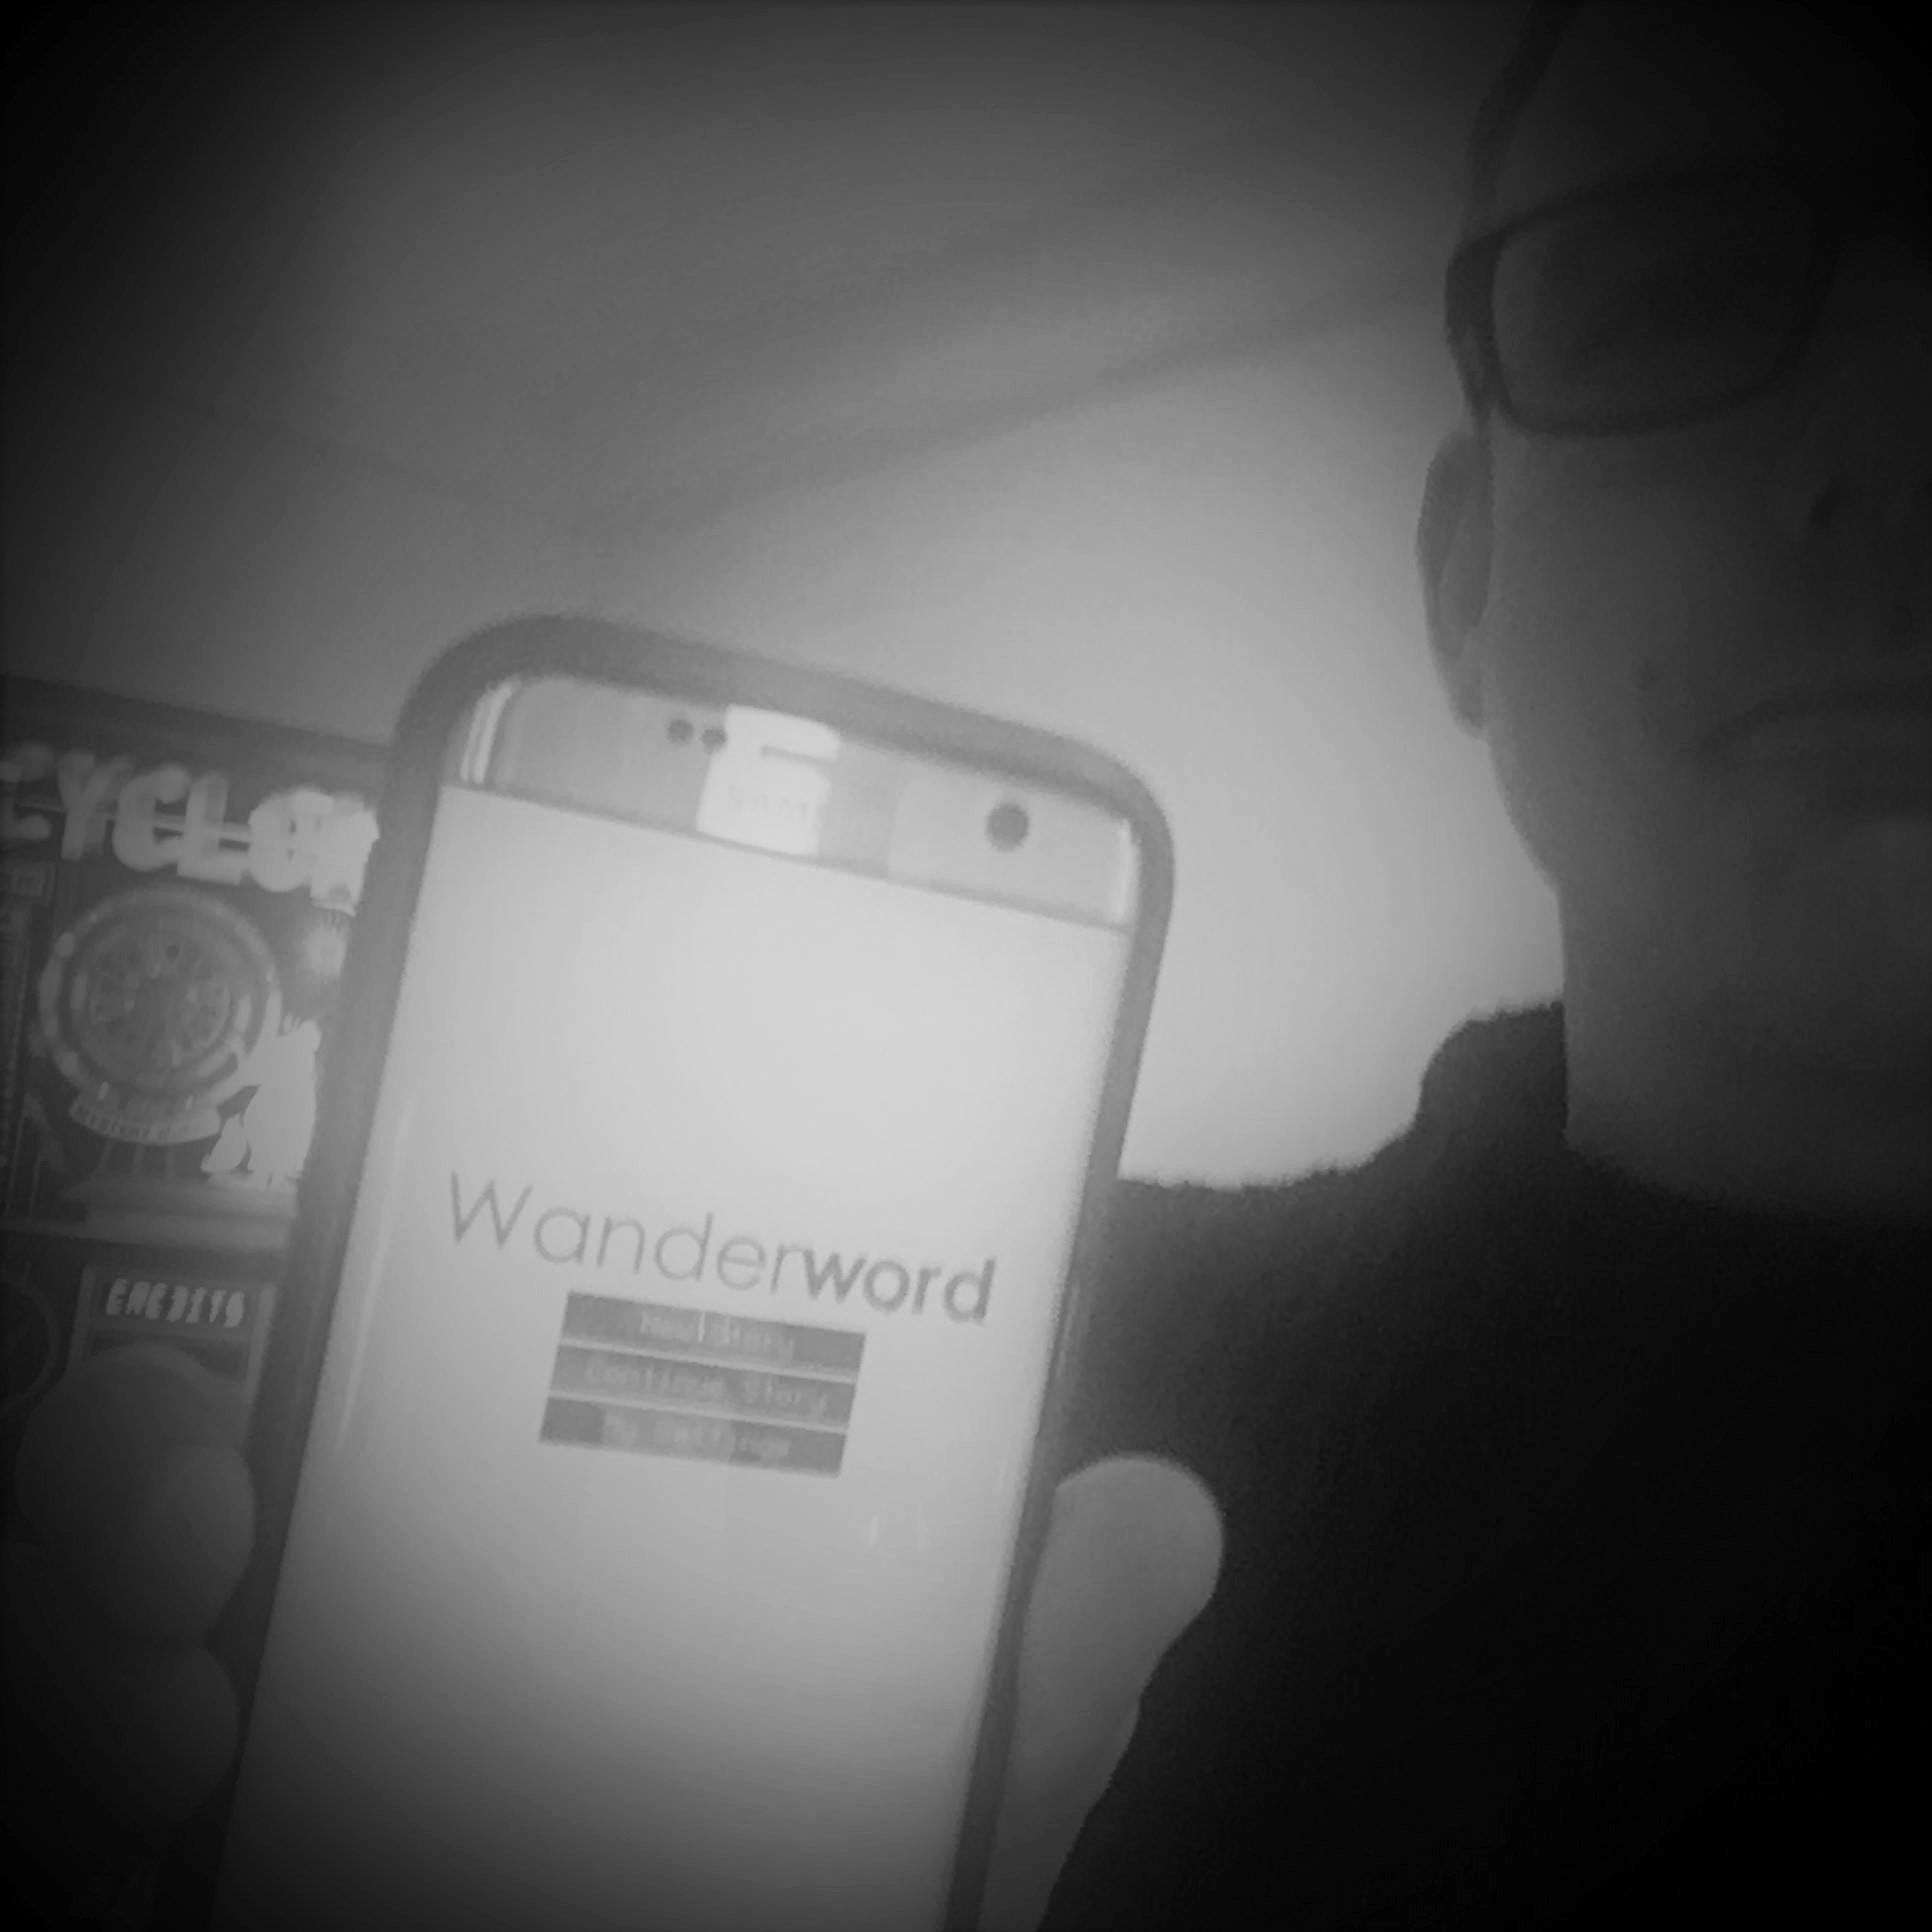 Prototype v2 - 2017 - Work on Wanderword prototype v2 started in early 2017 with a set of goals to further prove the core concept and its potential as both a platform, story editor and interactive audio book experience. We have successfully achieved these goals and are now busy speaking to potential investors and strategic partners to secure funding. The prototype encompasses;- Fully featured Wanderword client running on Android device.- One playable 45-60 minutes interactive Wanderword experience